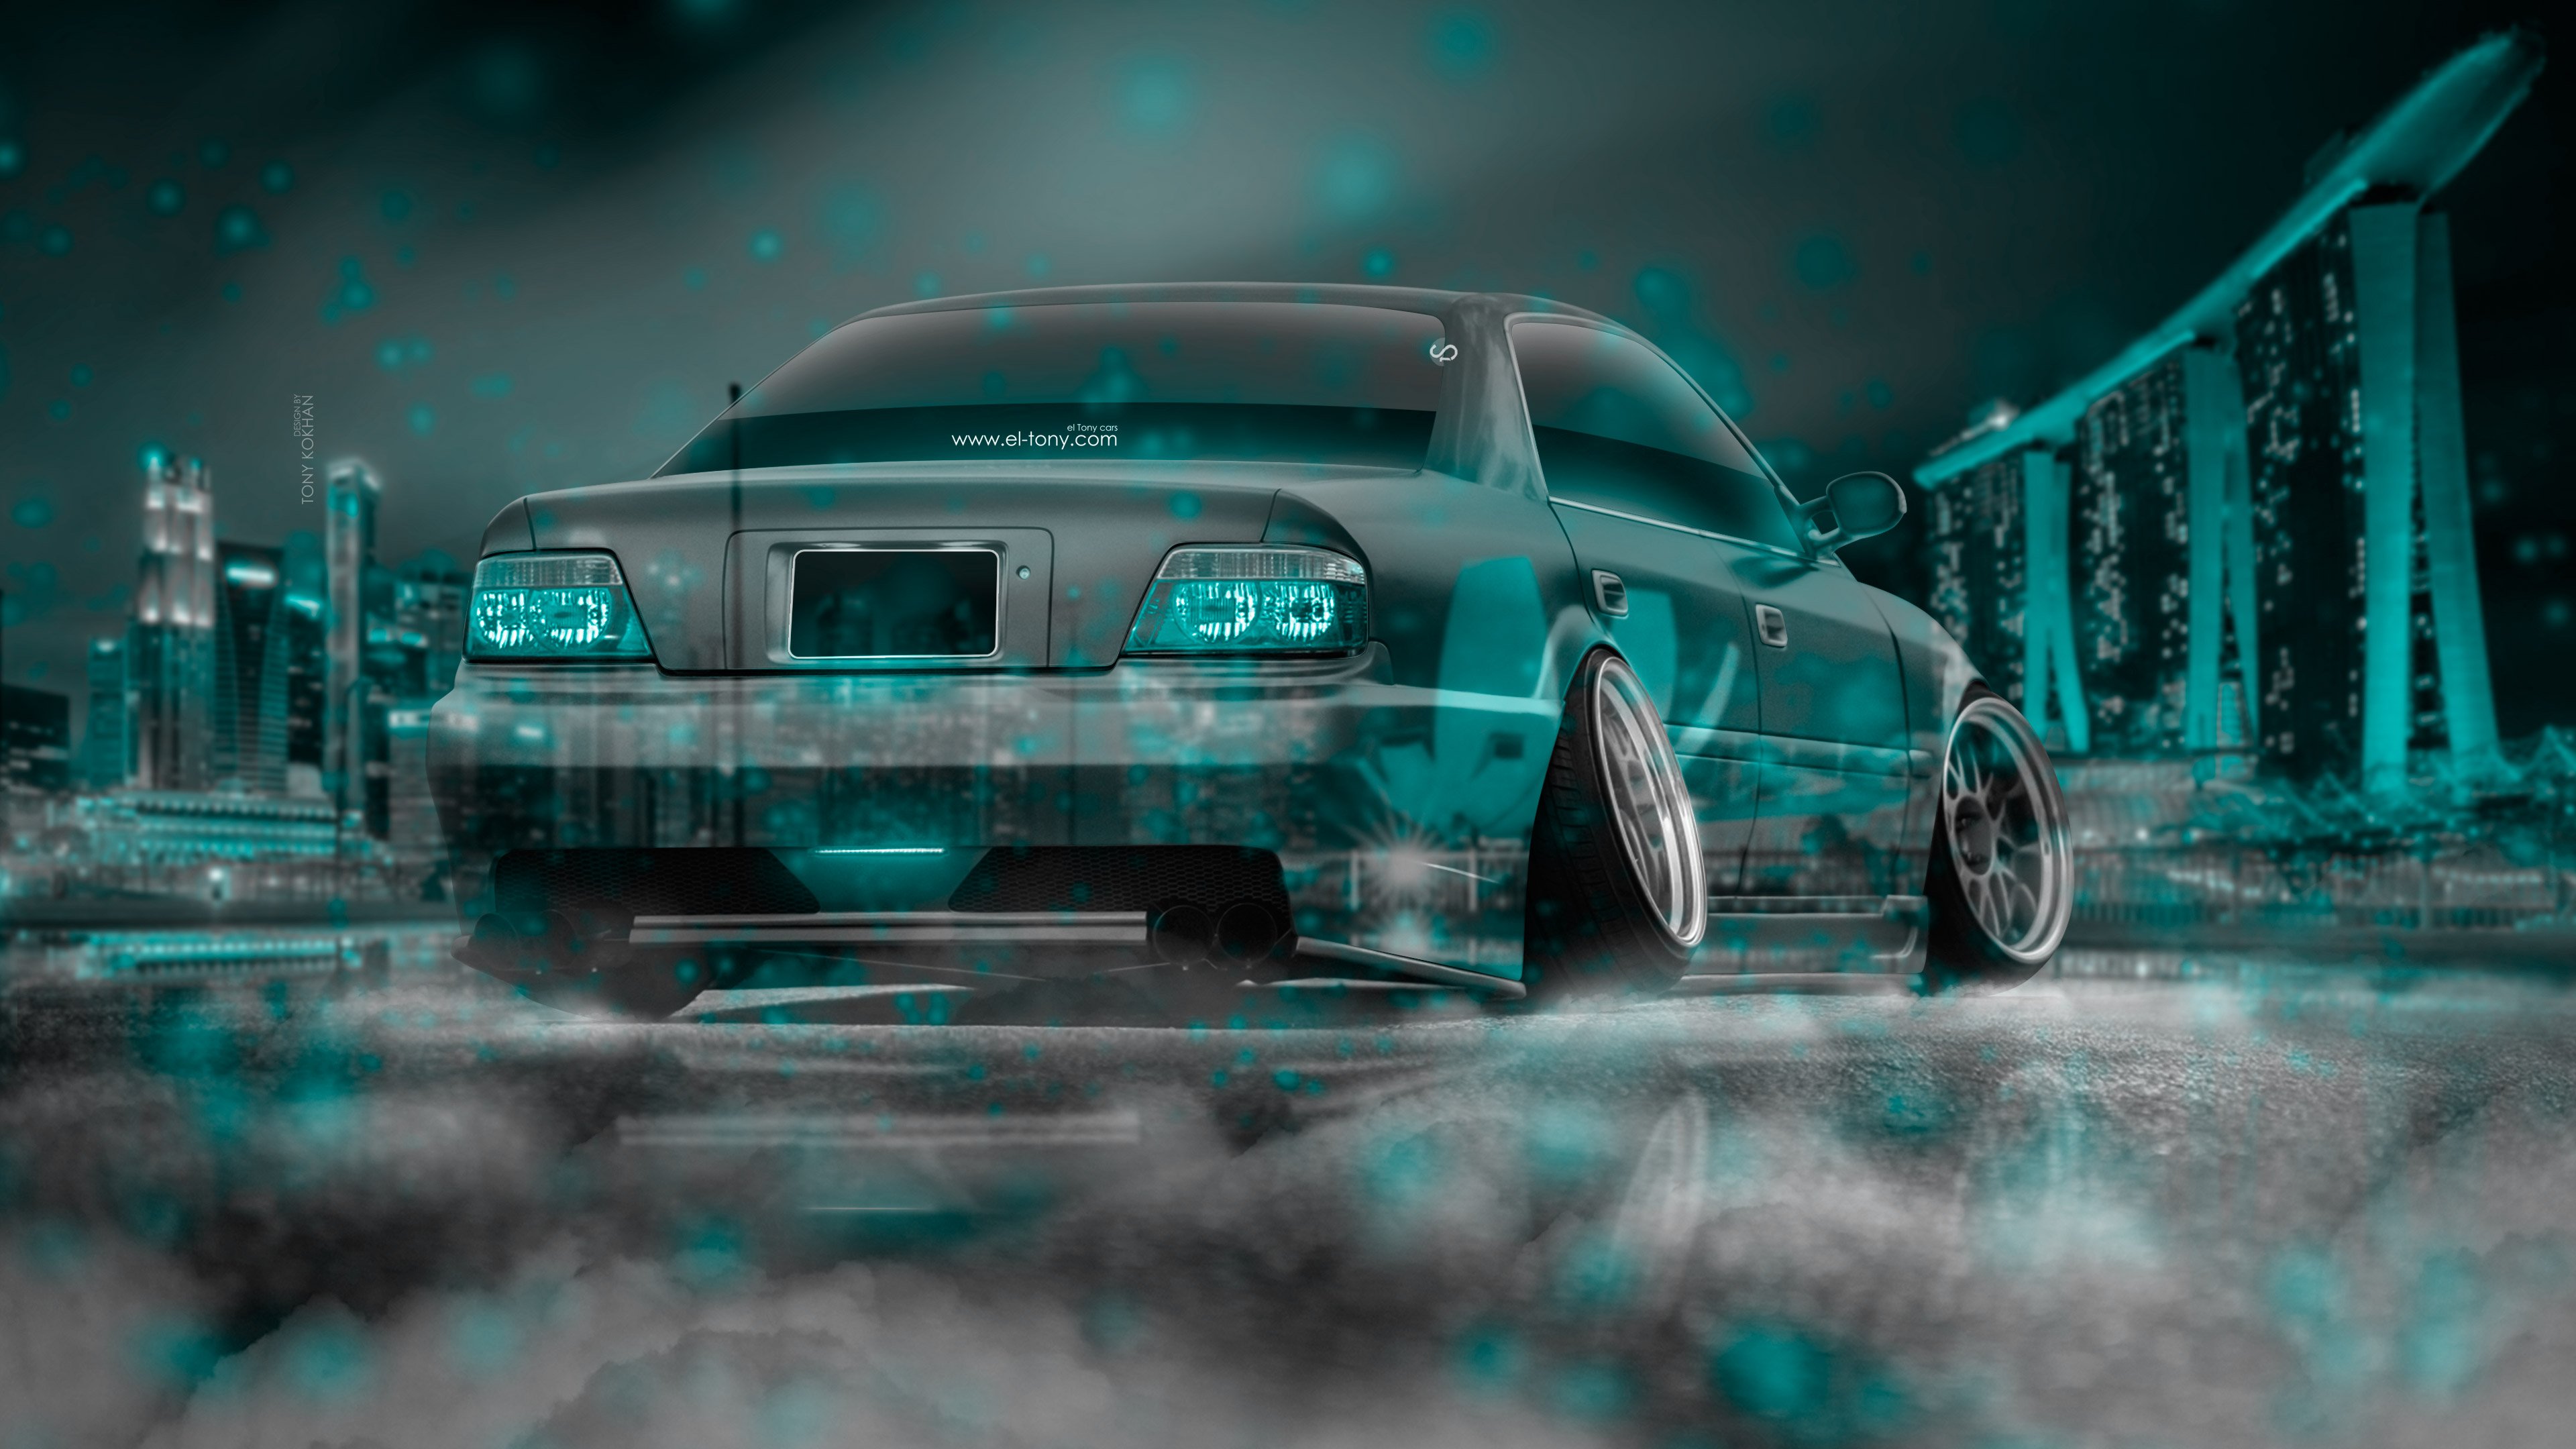 Anonymous Mask Wallpaper 3d Toyota Chaser Jzx100 Jdm Crystal City Night Neon Fog Smoke